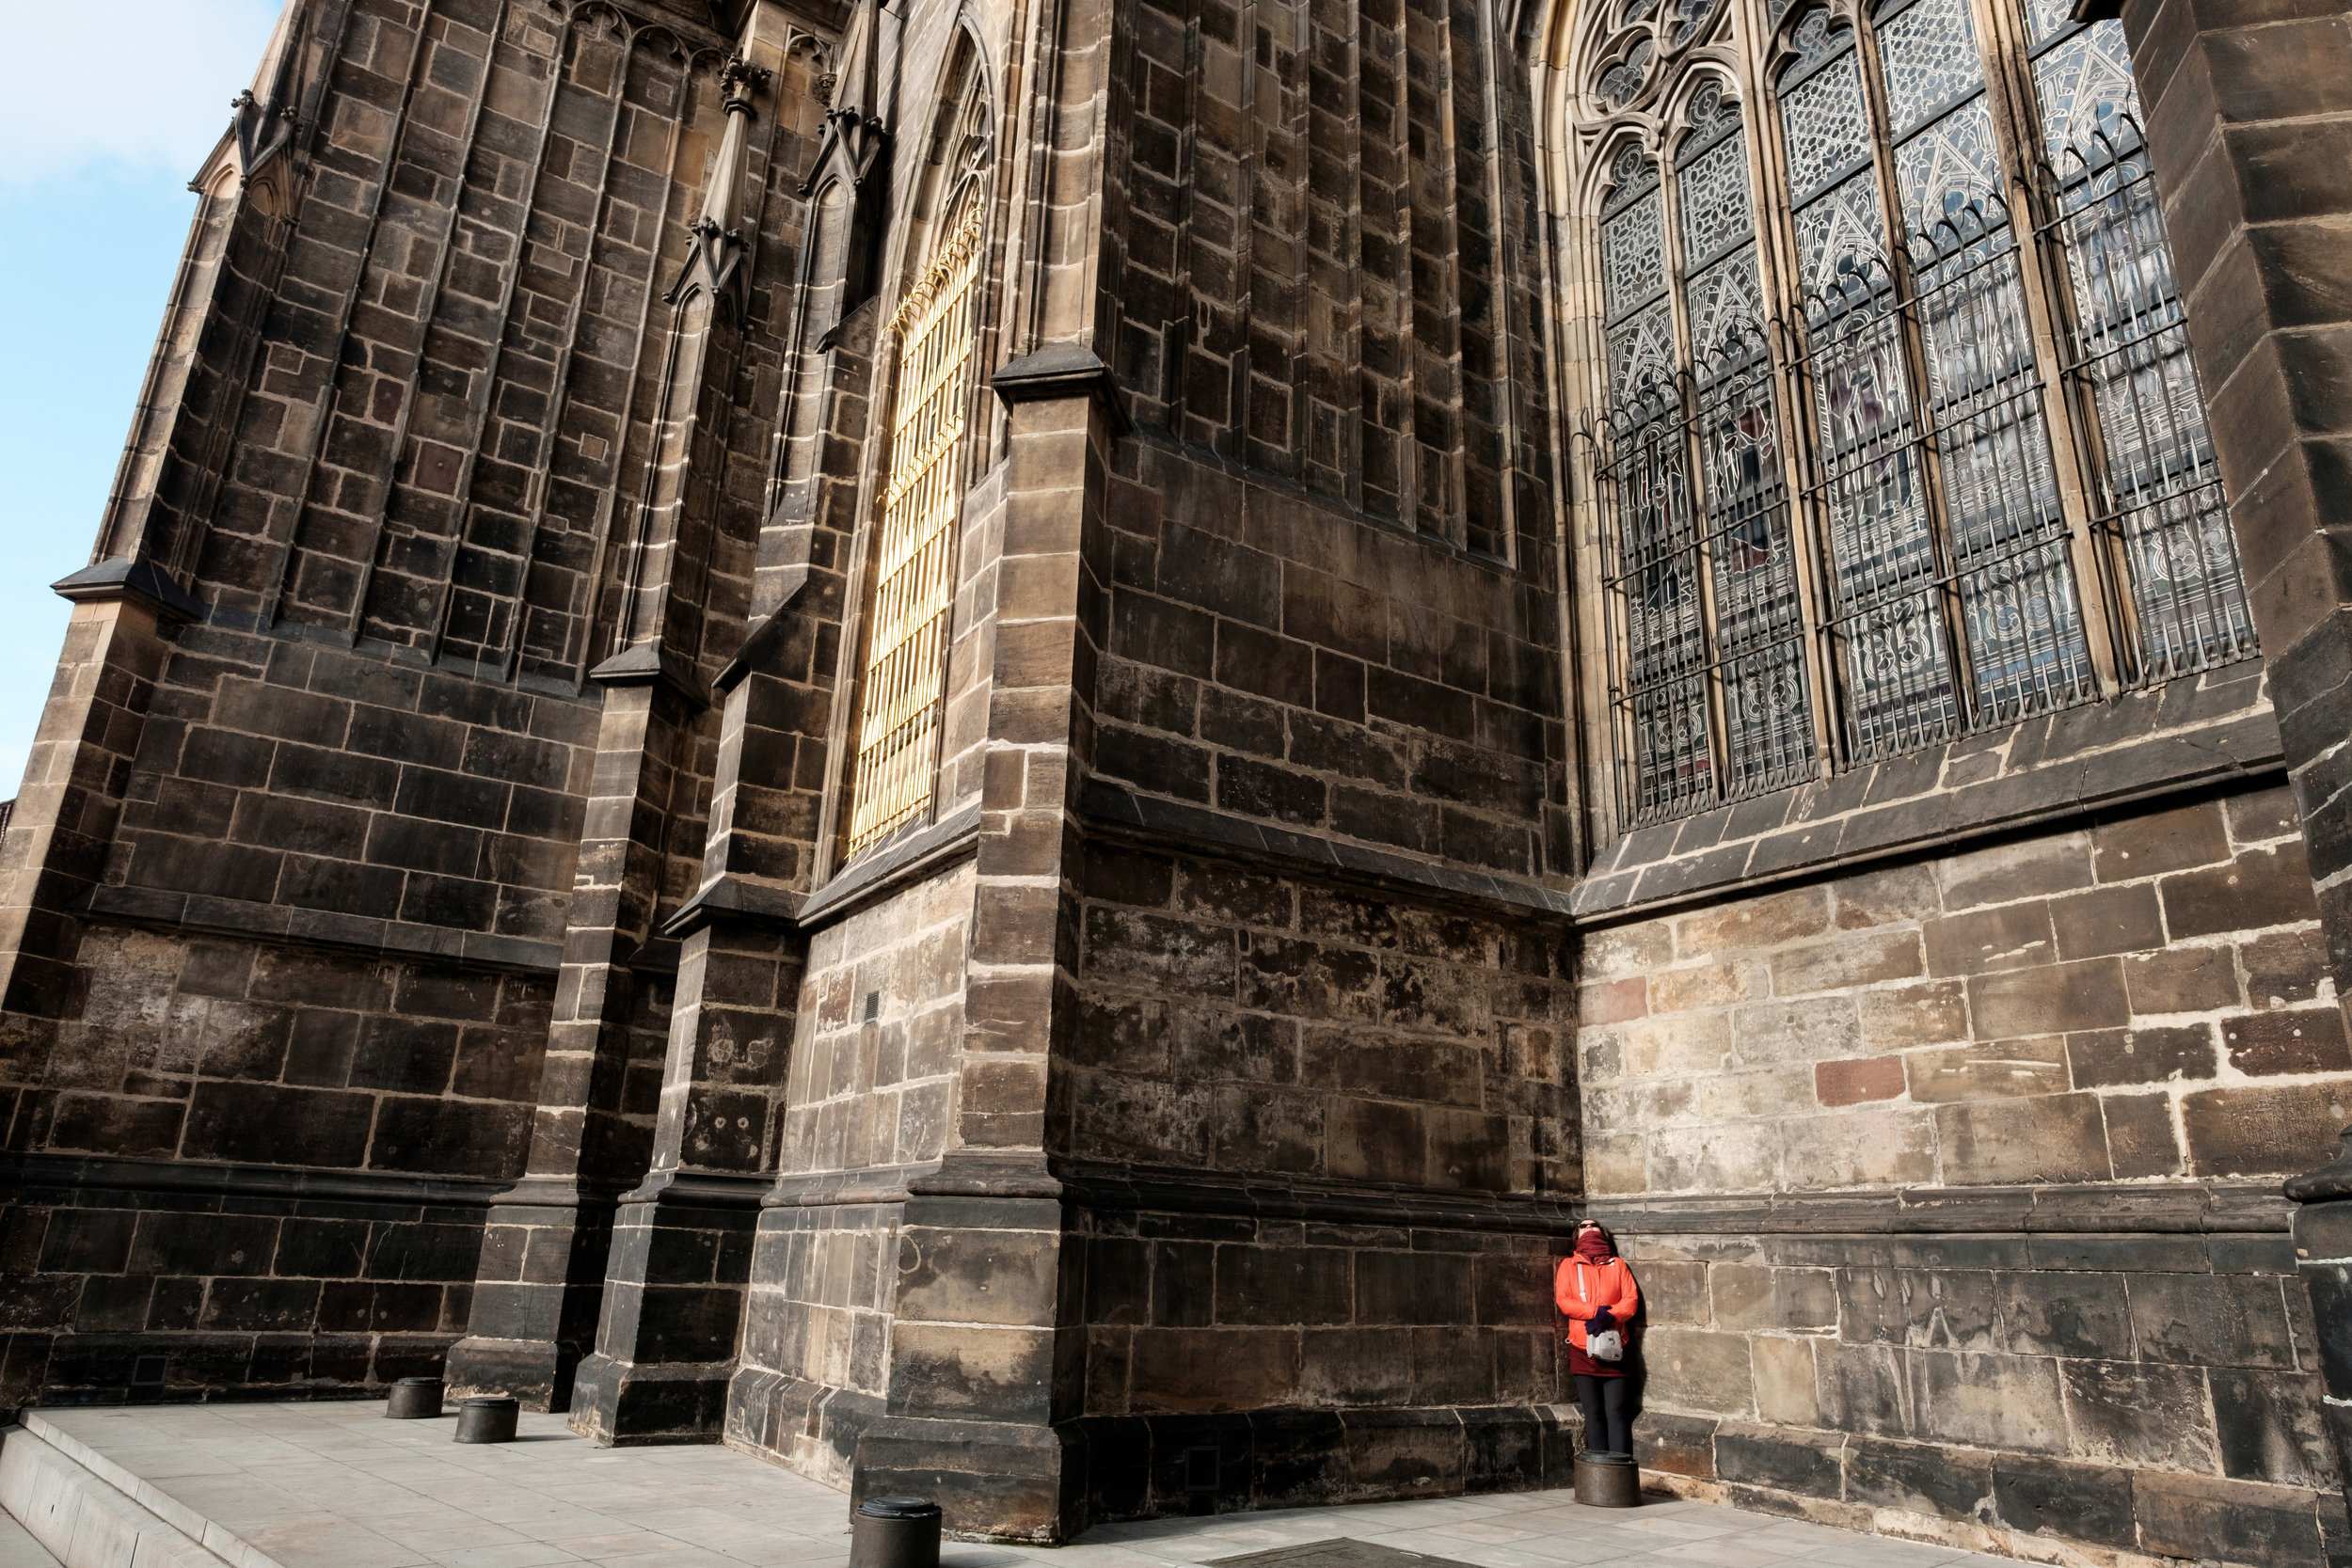 Di is completely dwarfed by the Prague Castle